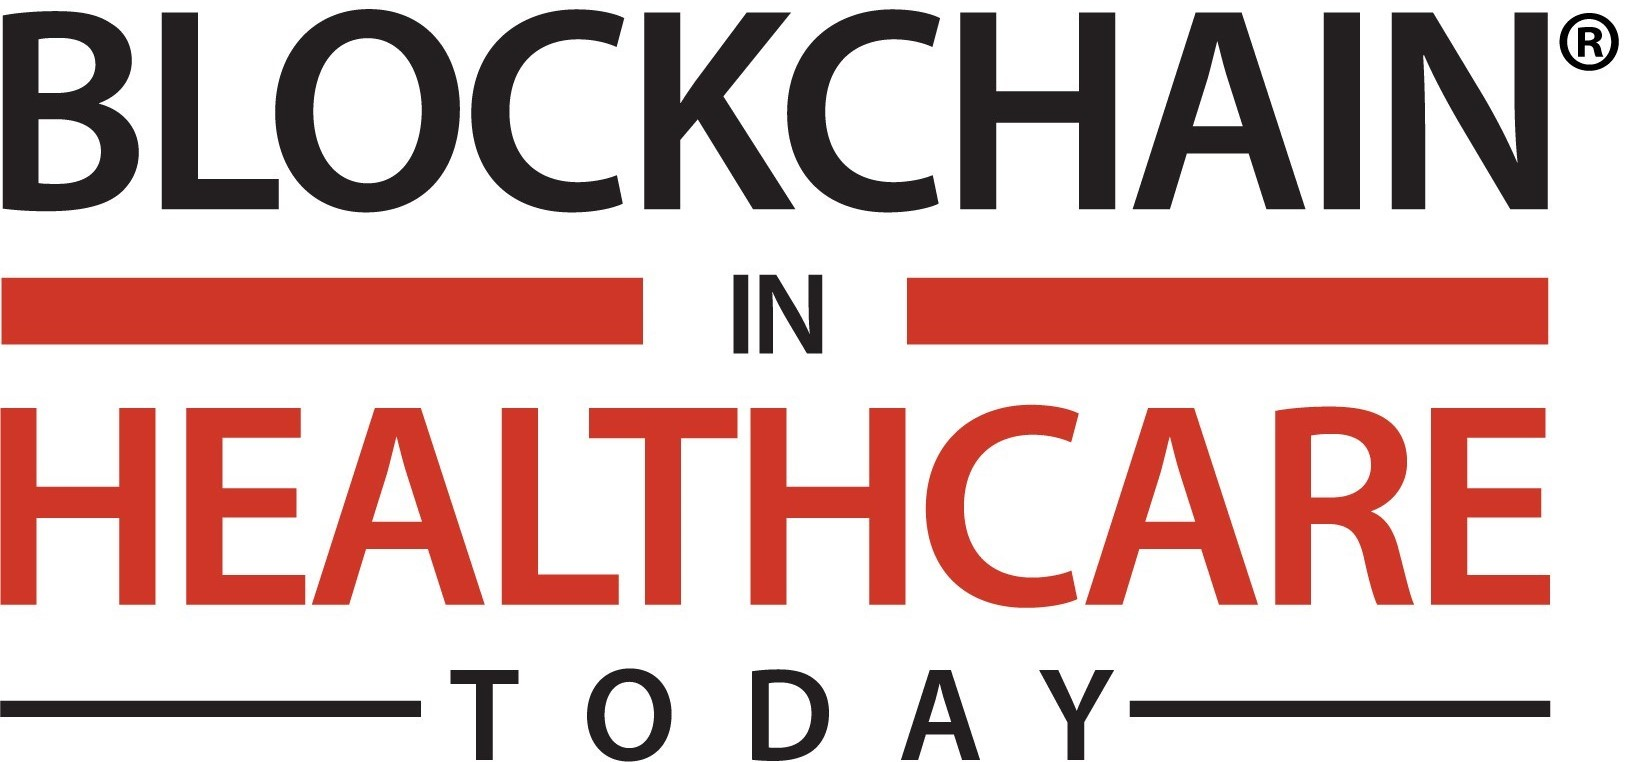 Blockchain in Healthcare Today